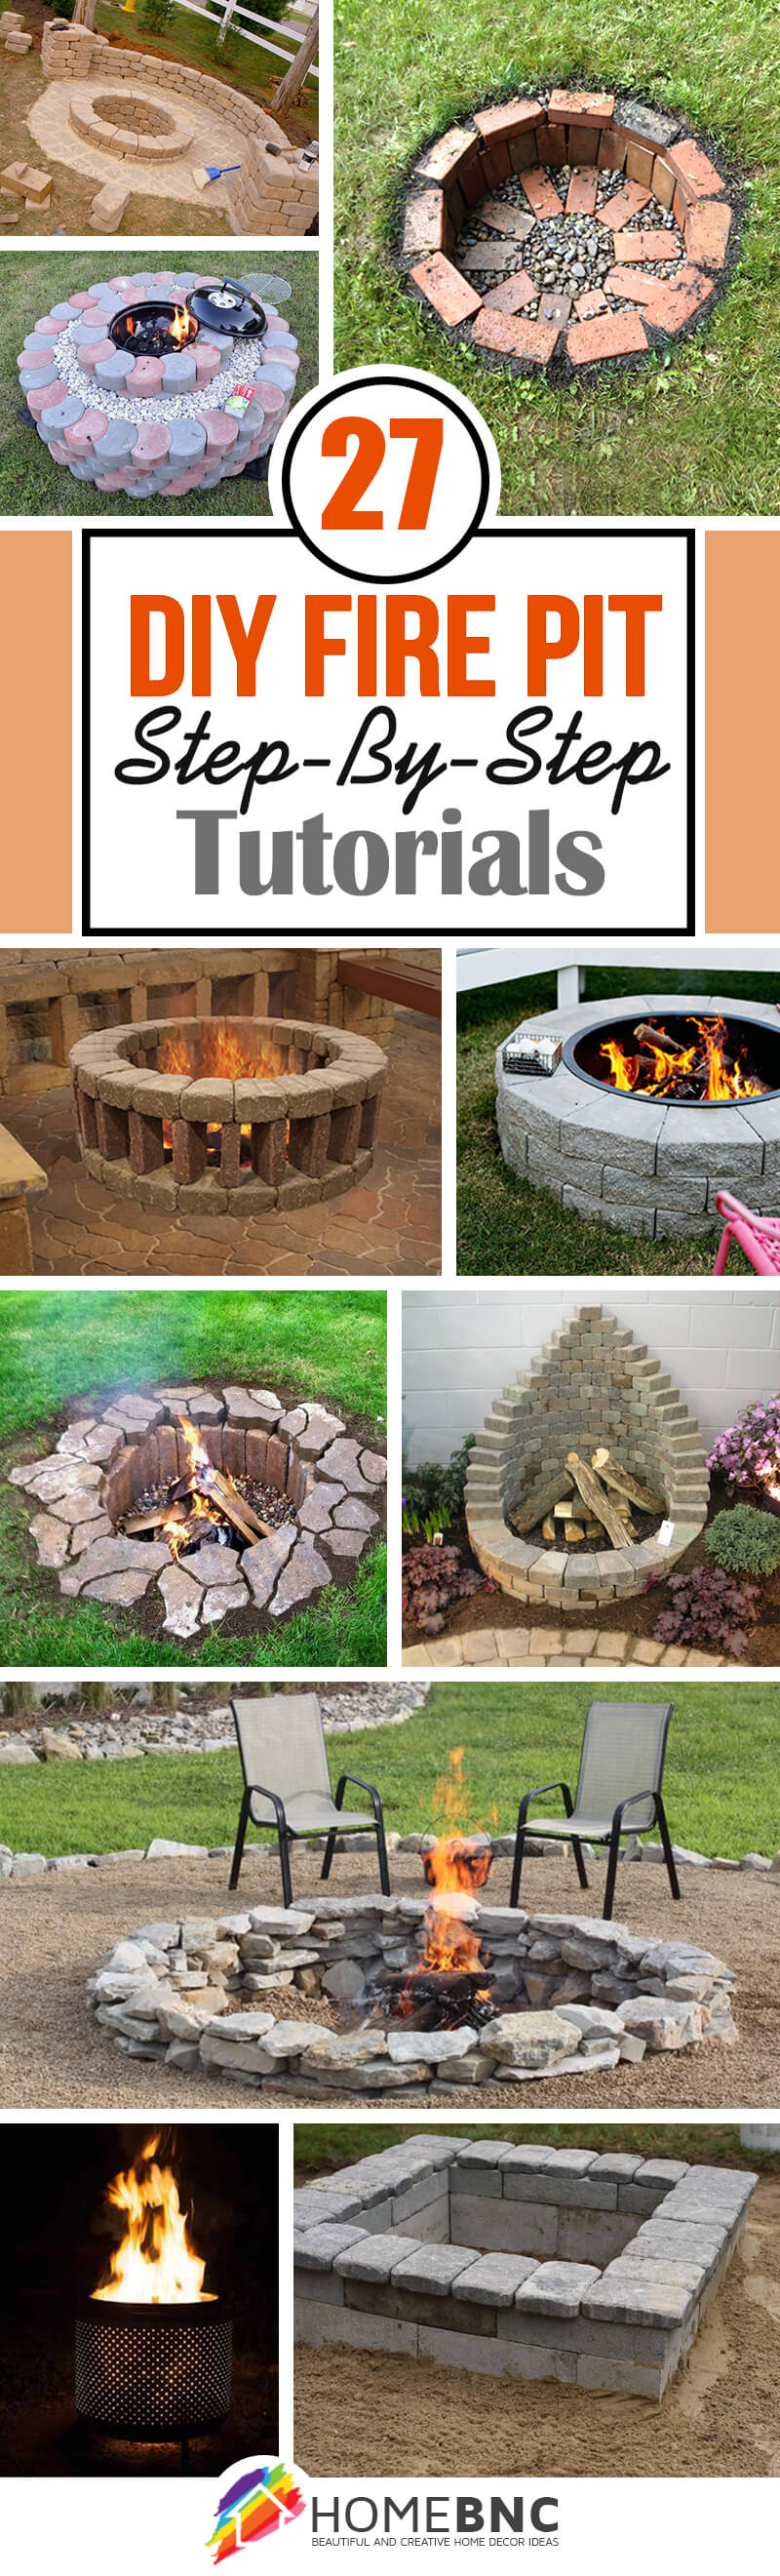 27 Best Diy Firepit Ideas And Designs For 2019 in Backyard Firepit Ideas